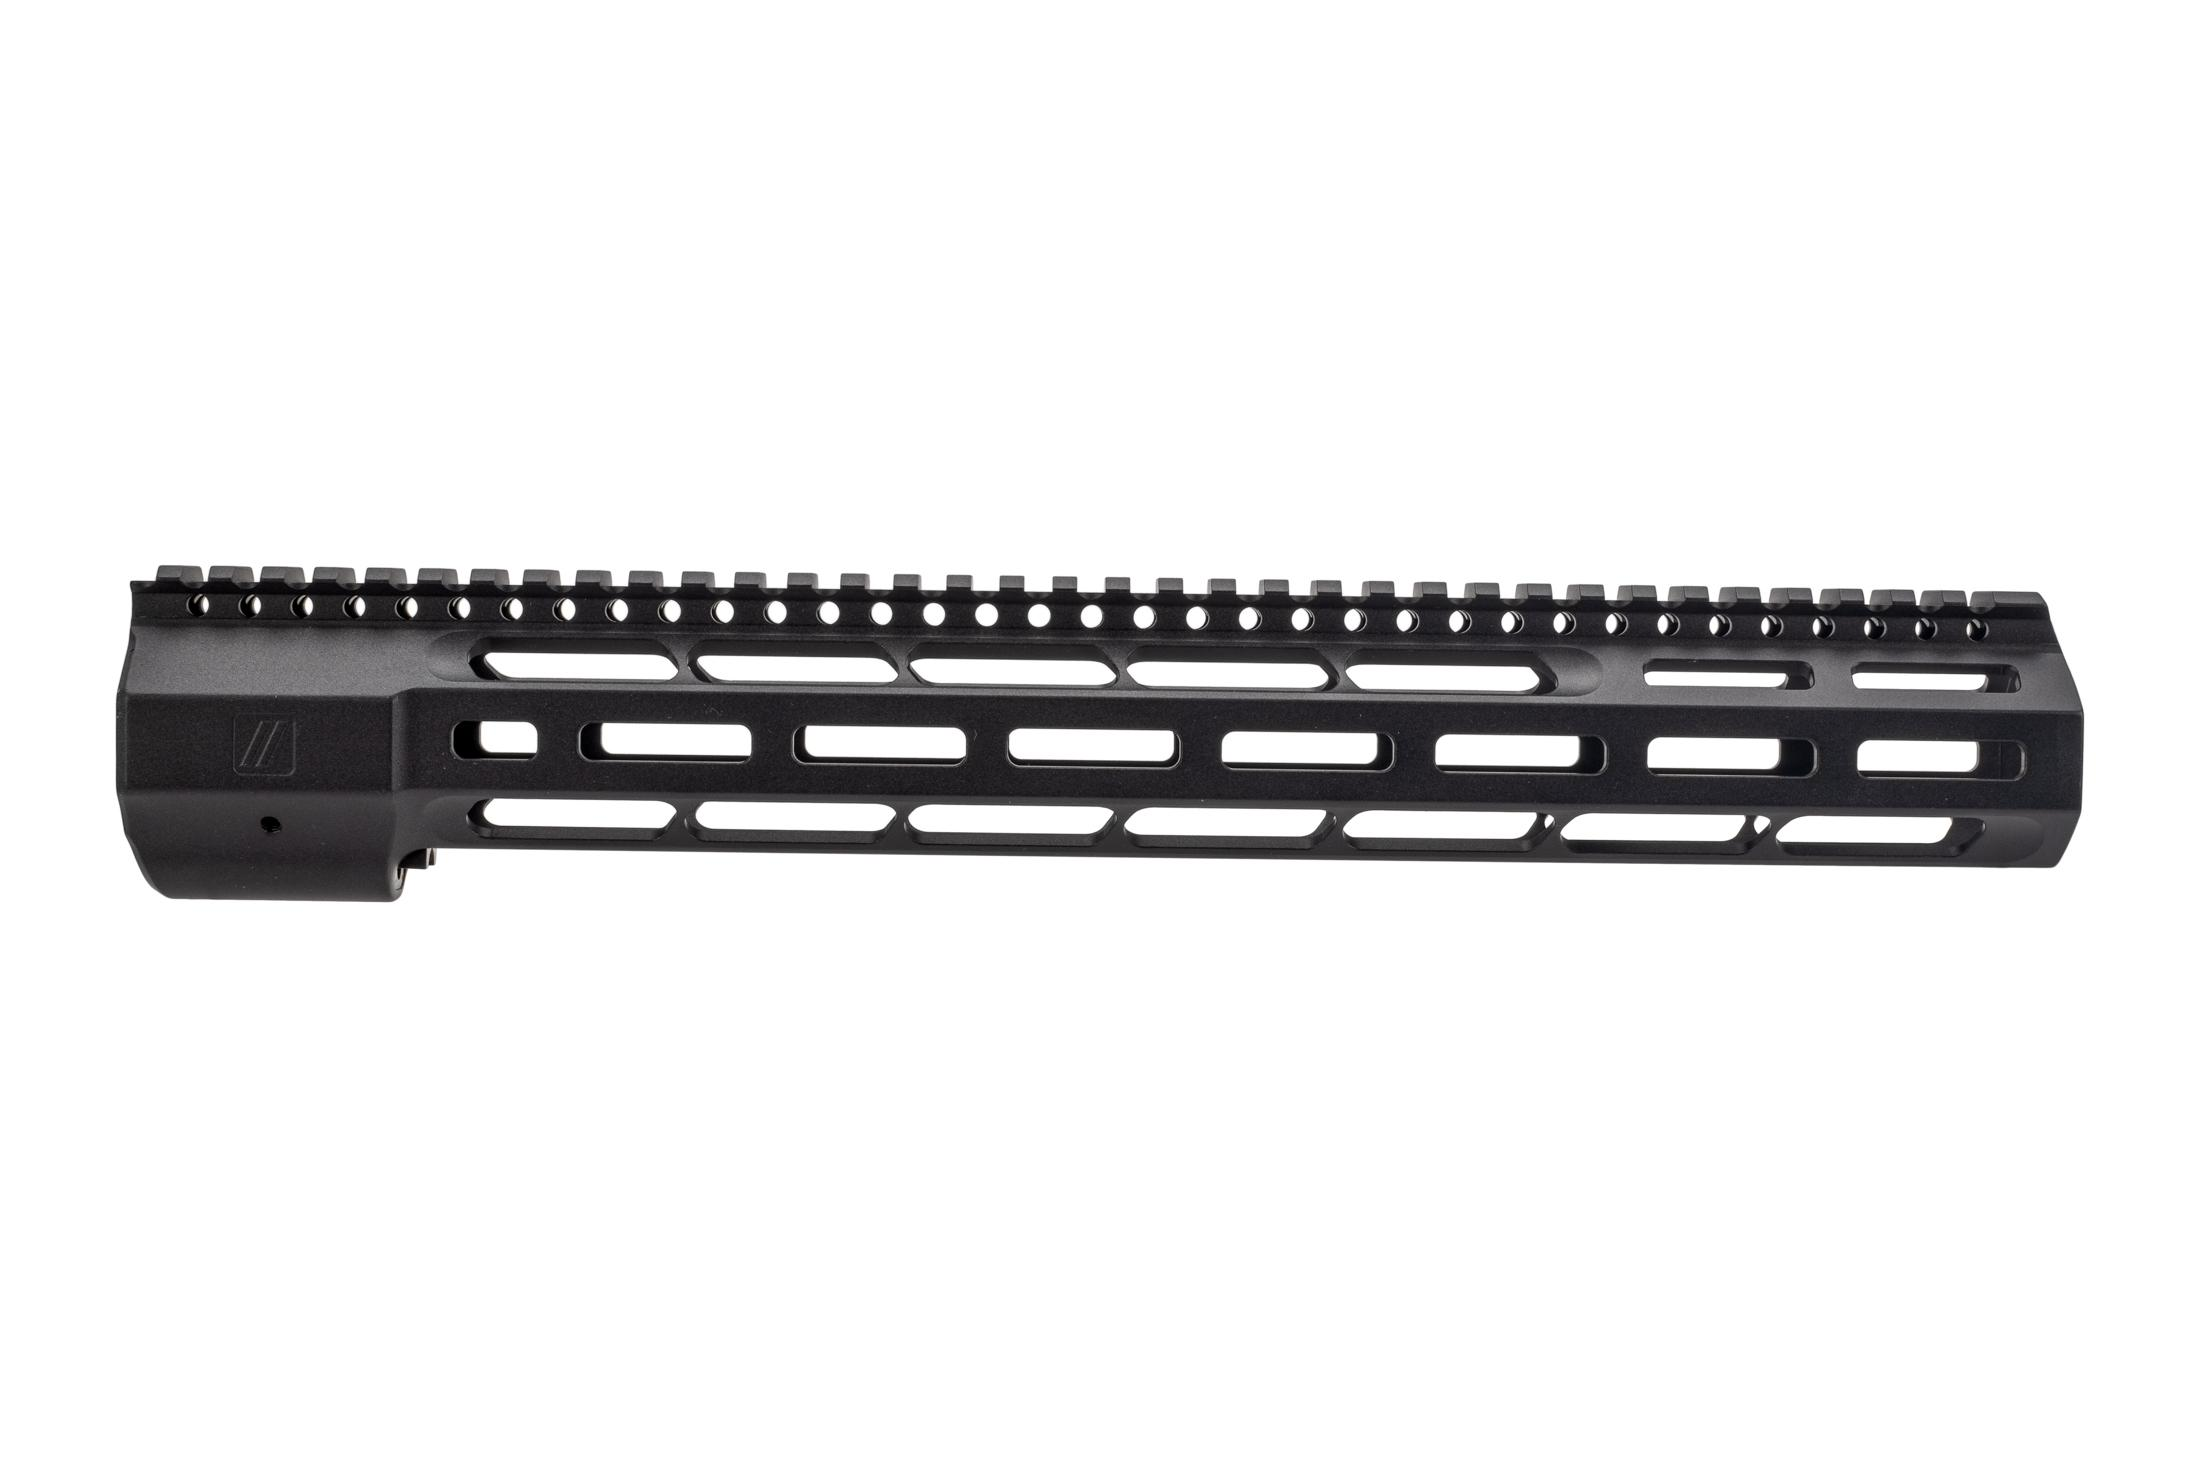 Zev Tech AR 308 Handguard features M-LOK attachment slots